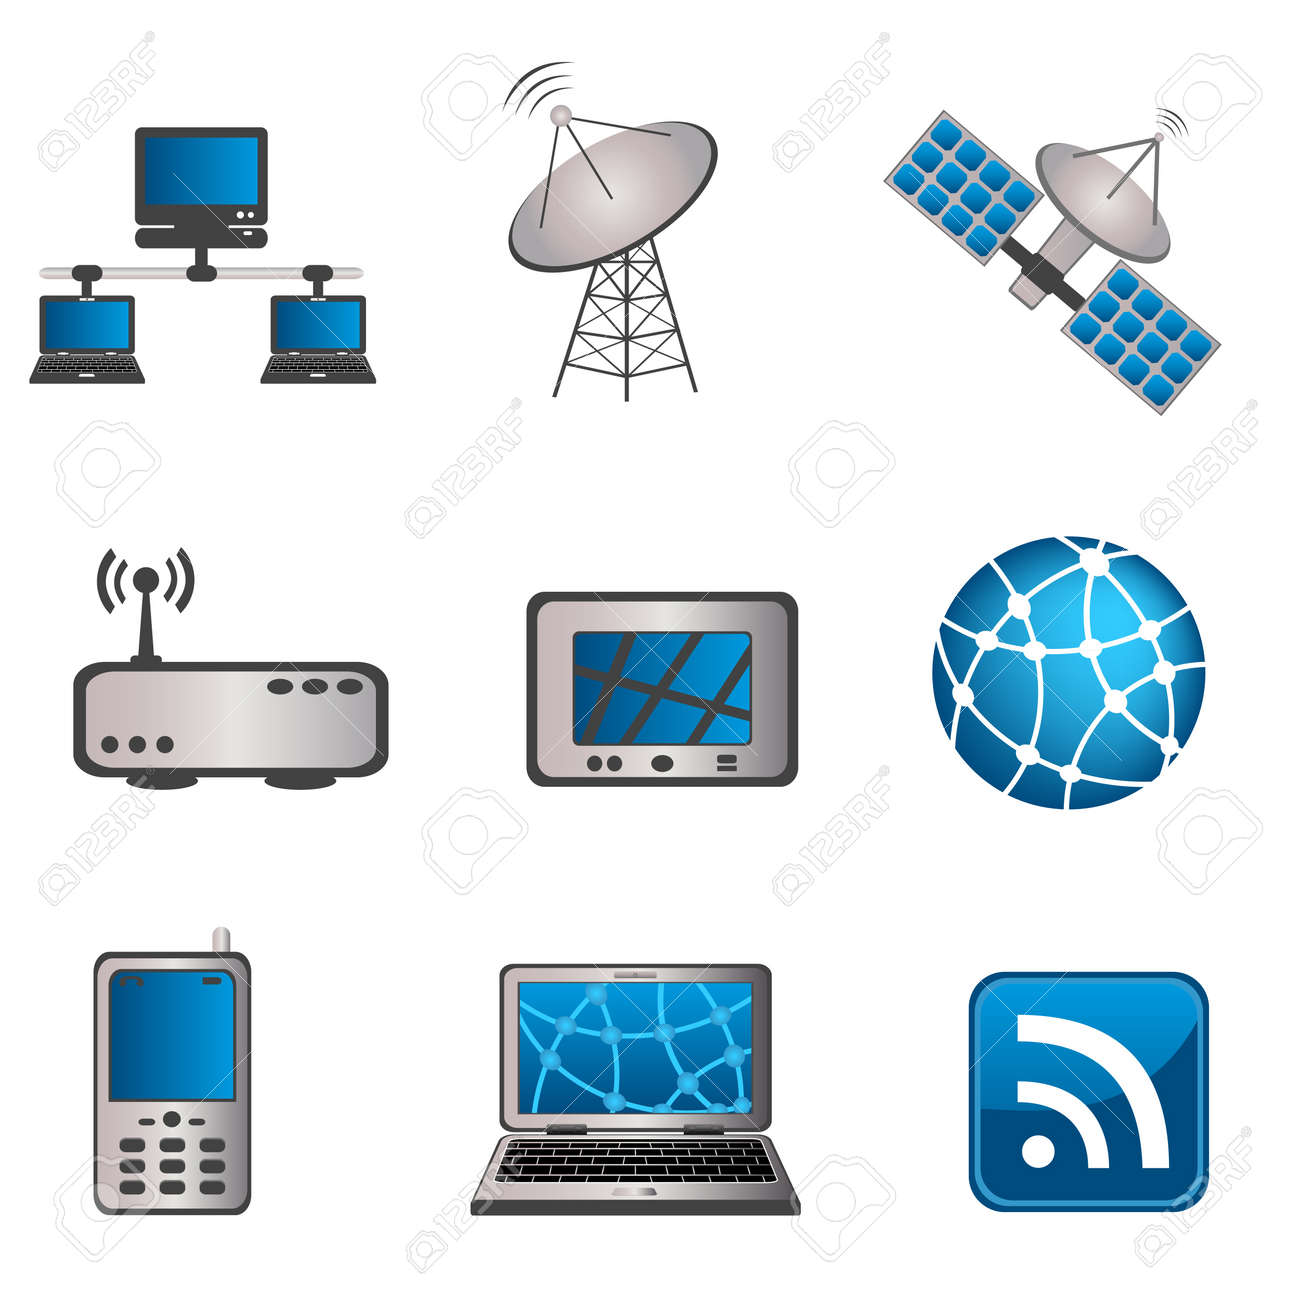 Communication Technology And Computer Icon Set Royalty Free Cliparts Vectors And Stock Illustration Image 9885218